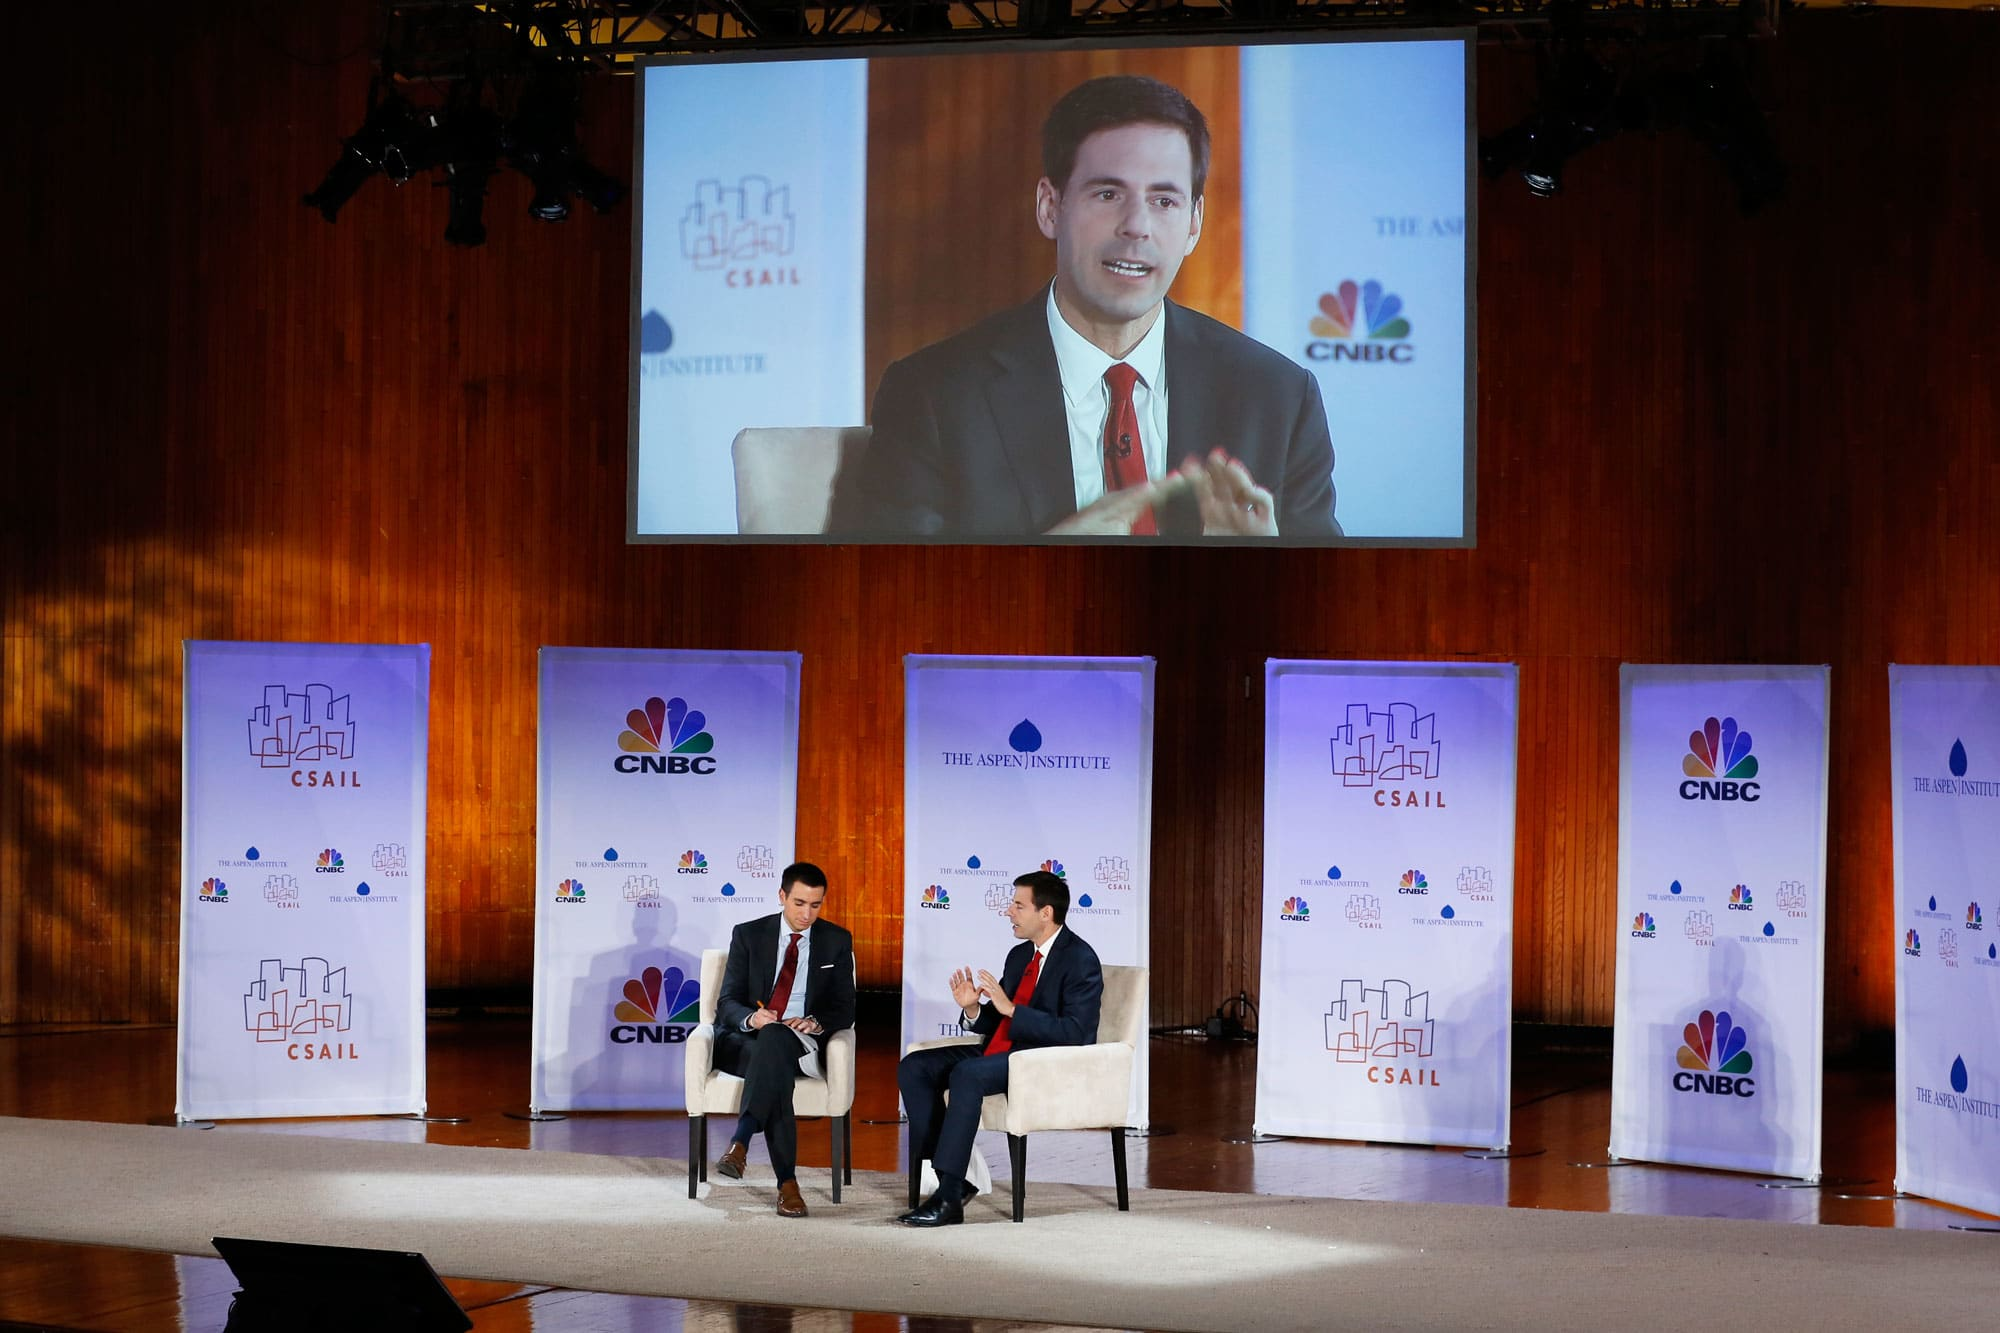 CNBC's Andrew Ross-Sorkin interviewing John Carlin at the Cambridge Cyber Summit on Wednesday, October 5, 2016.